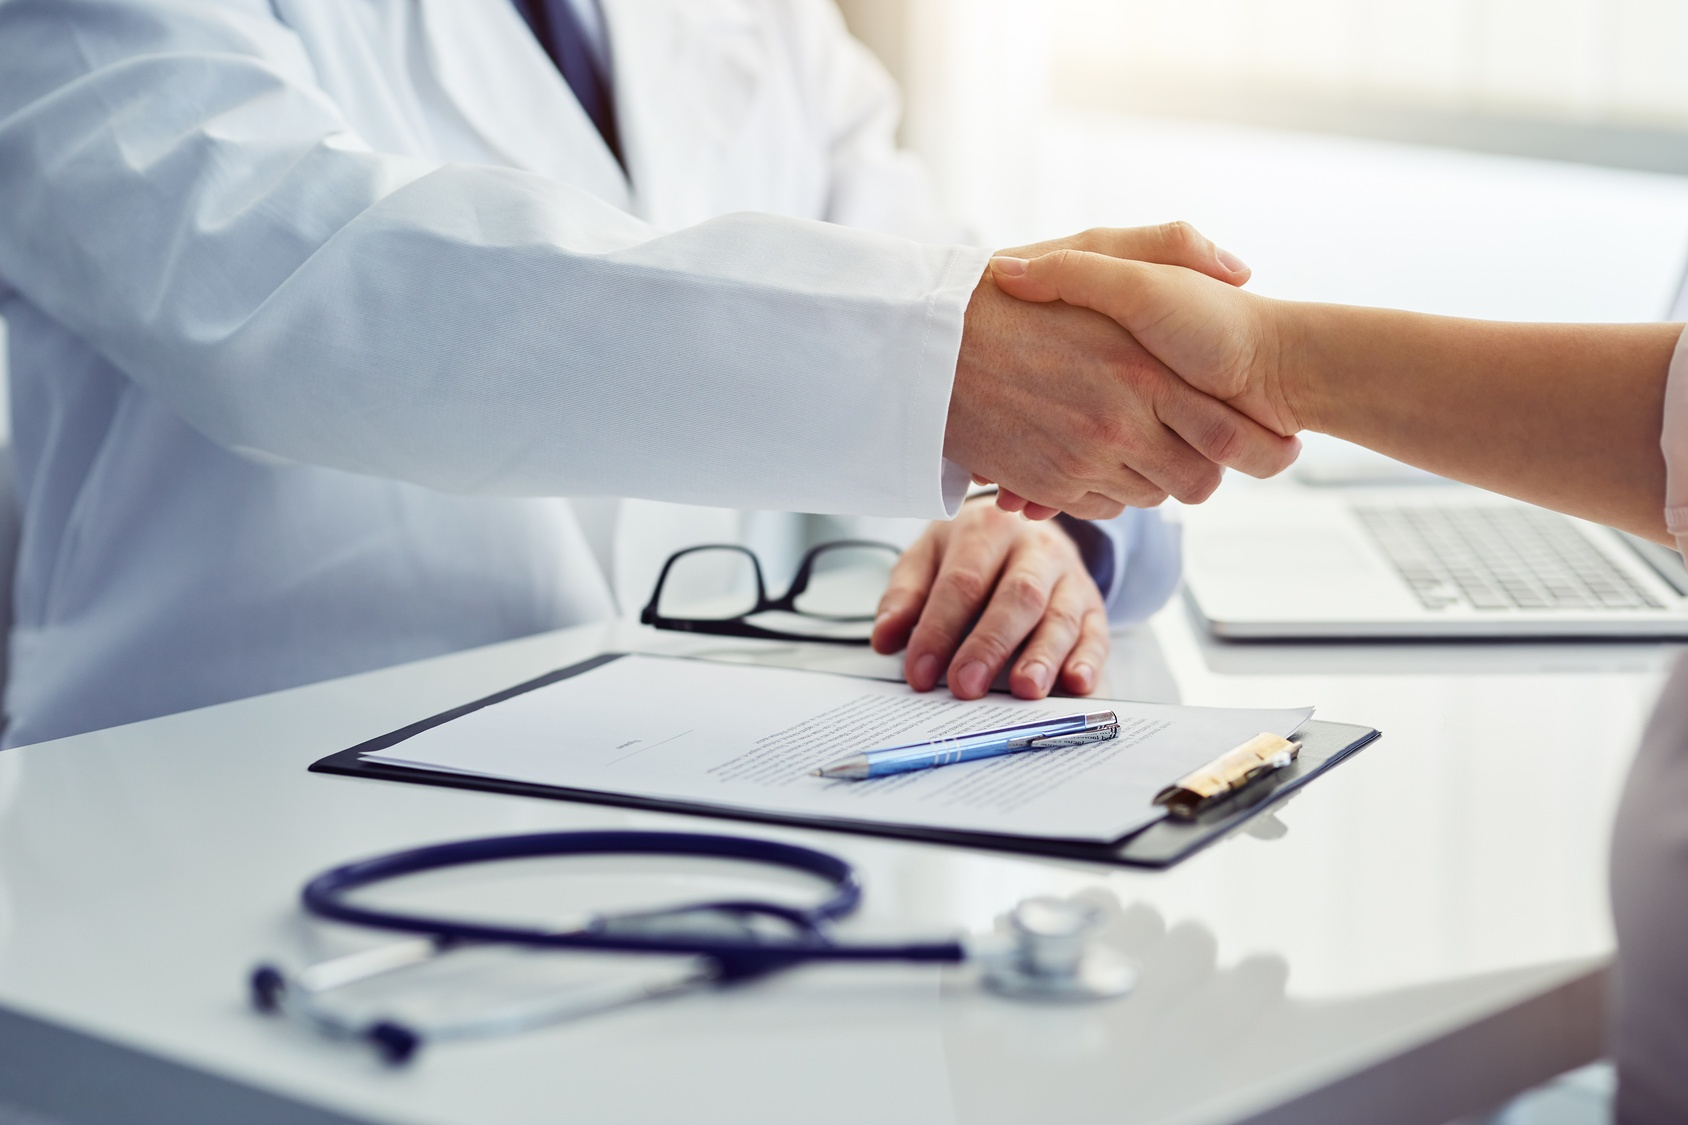 5 Ways Healthcare Organizations Can Boost Patient Loyalty